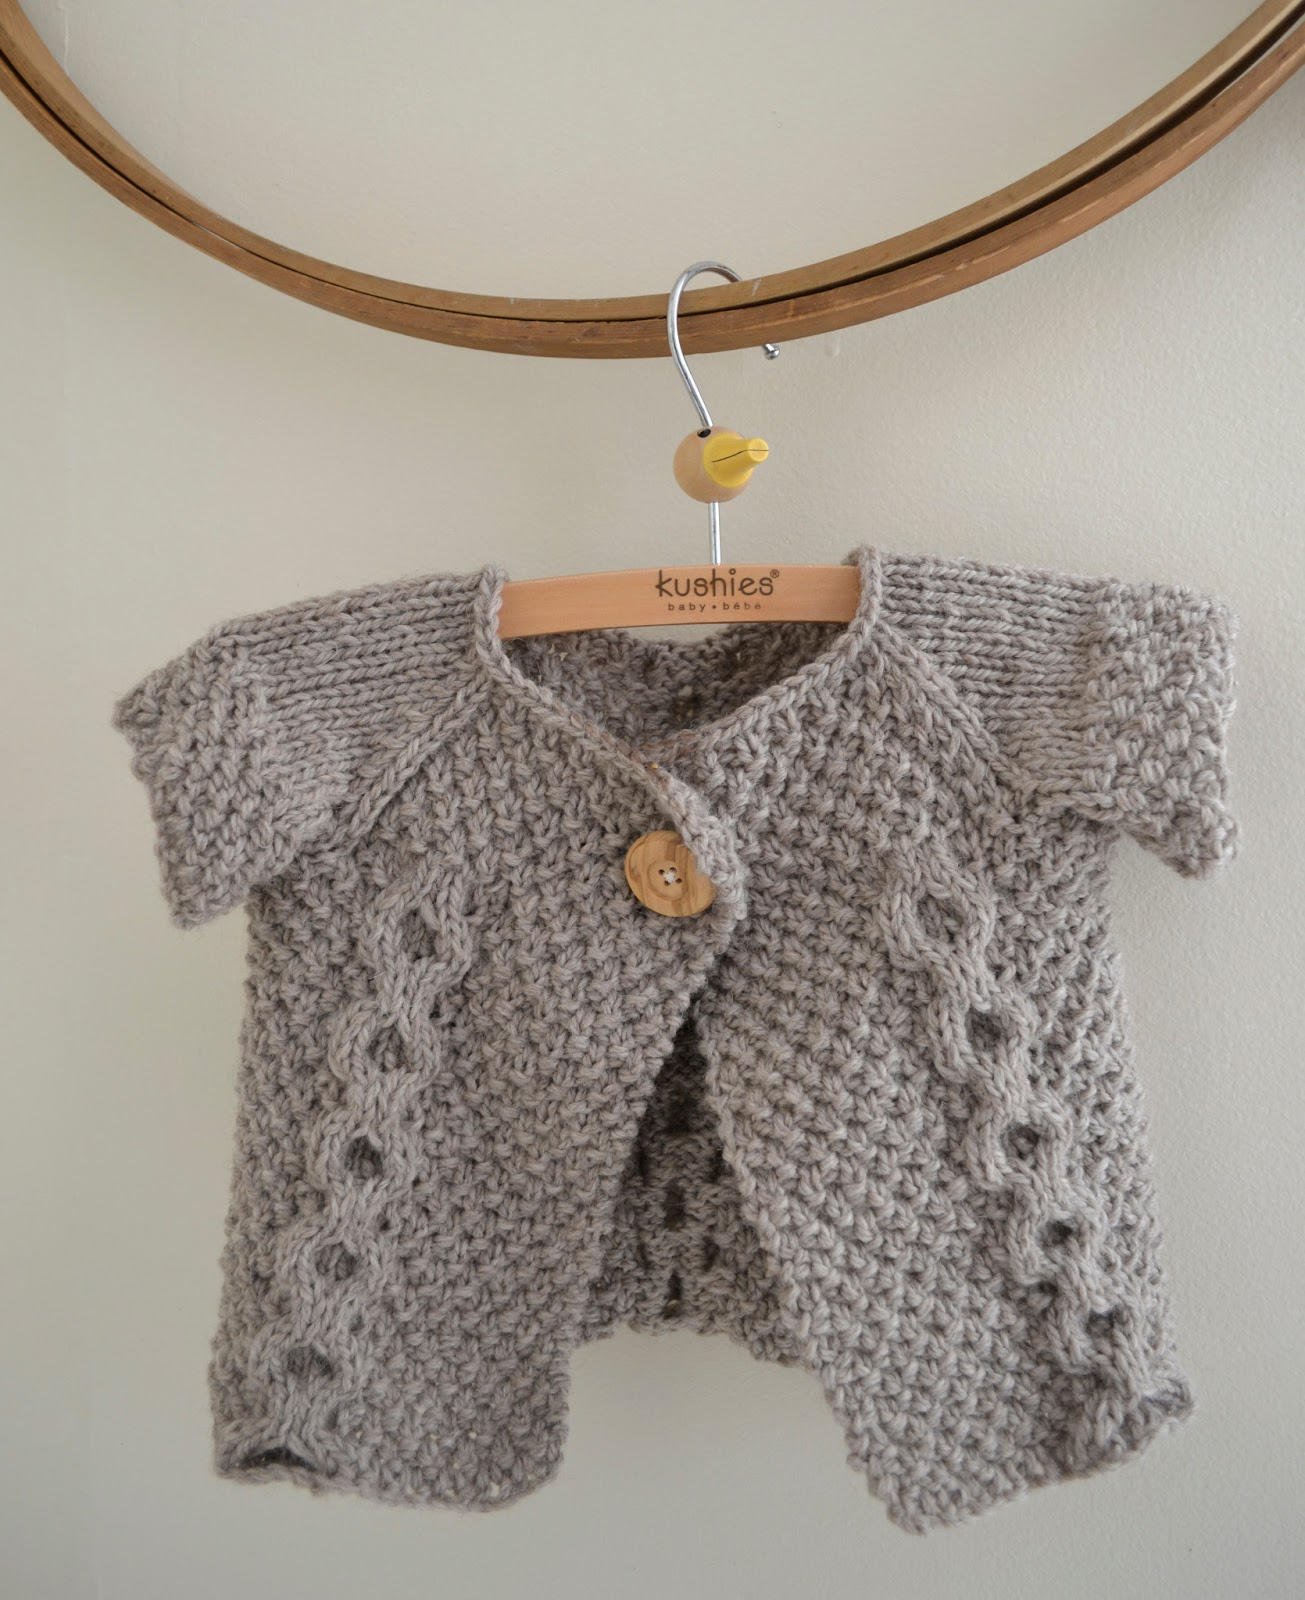 Crystal Palace Knitting Patterns : Baby Sweater Knitting Pattern A Knitting Blog